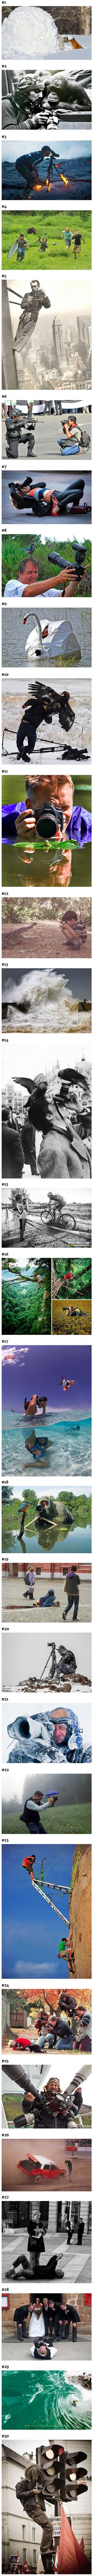 These photographers went to the extreme to get the perfect shot.